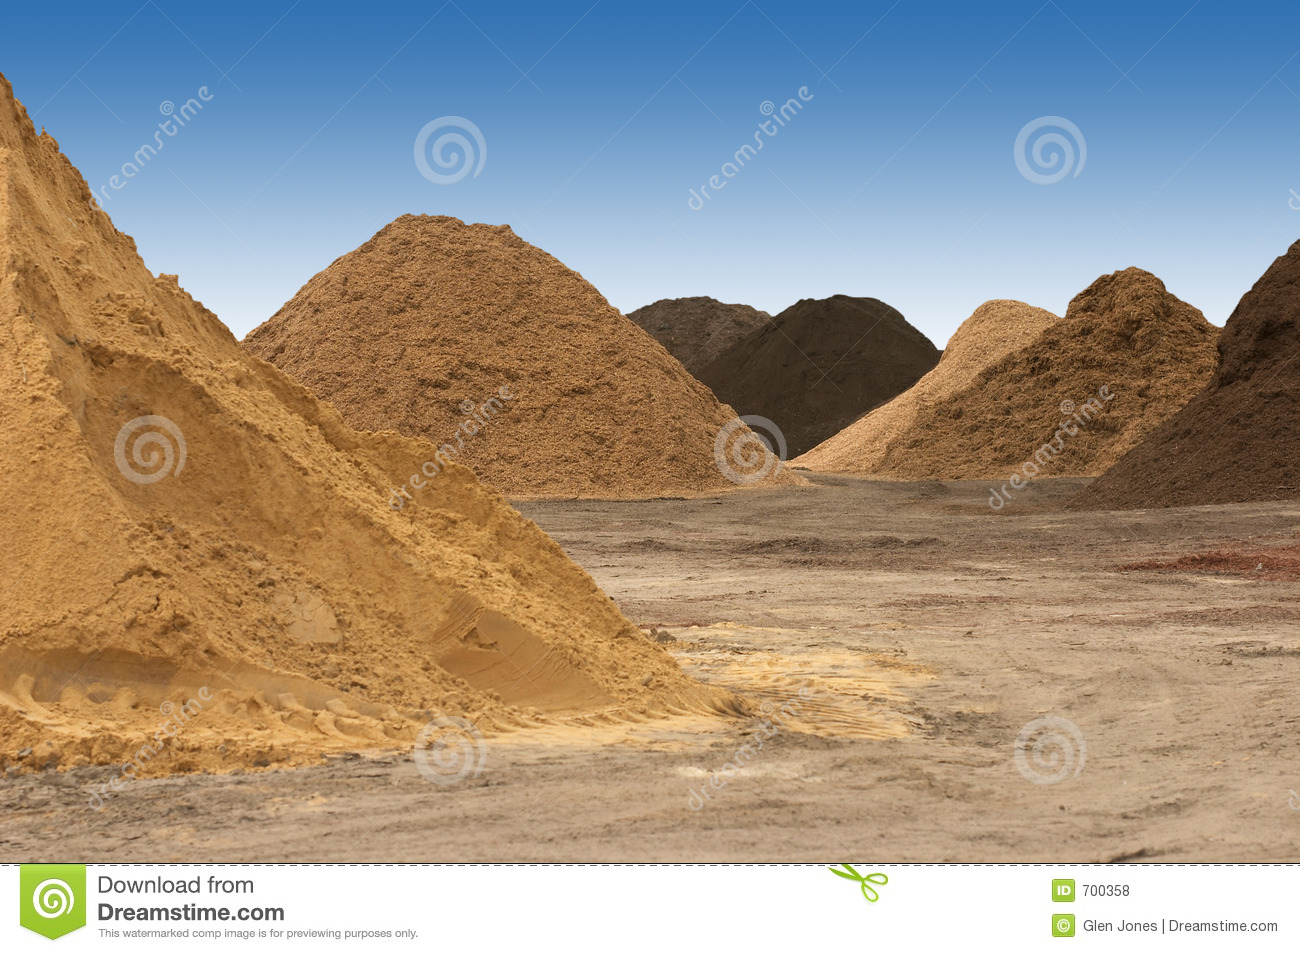 Sand formations clipart #16